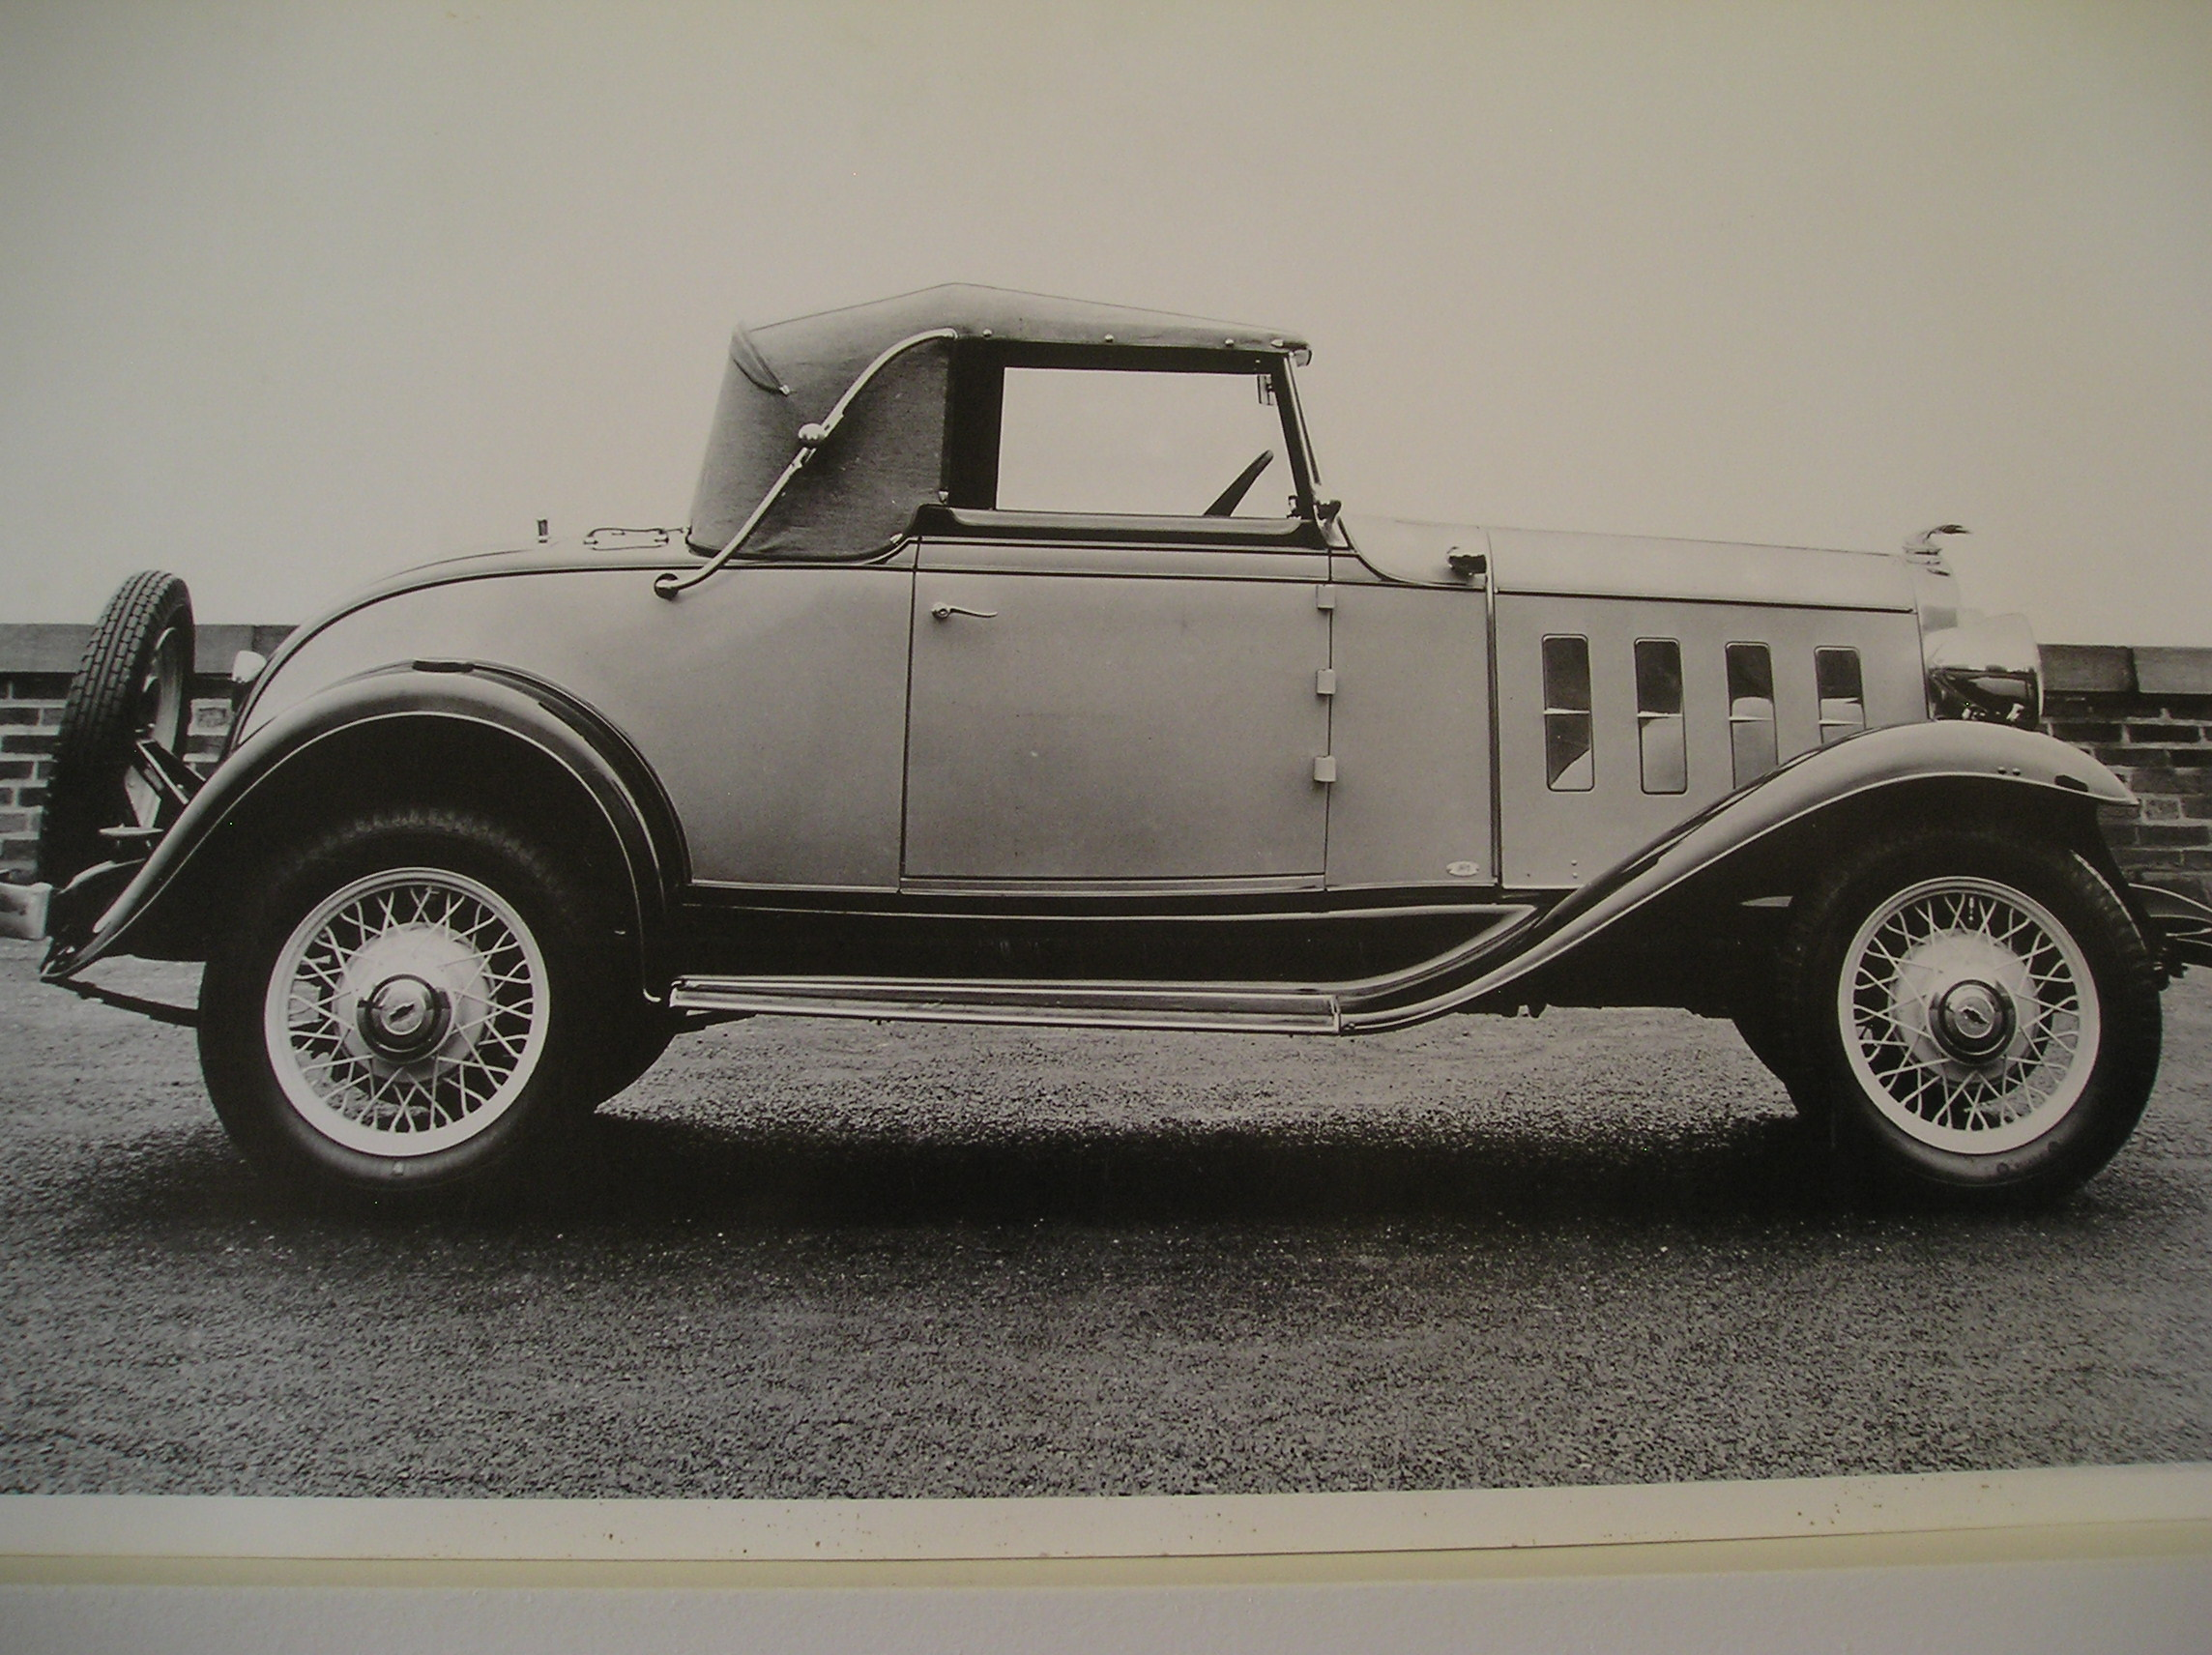 1932 Chevrolet Cabriolet for Sale http://felizcustompainting.com/archives/1006/olympus-digital-camera-201